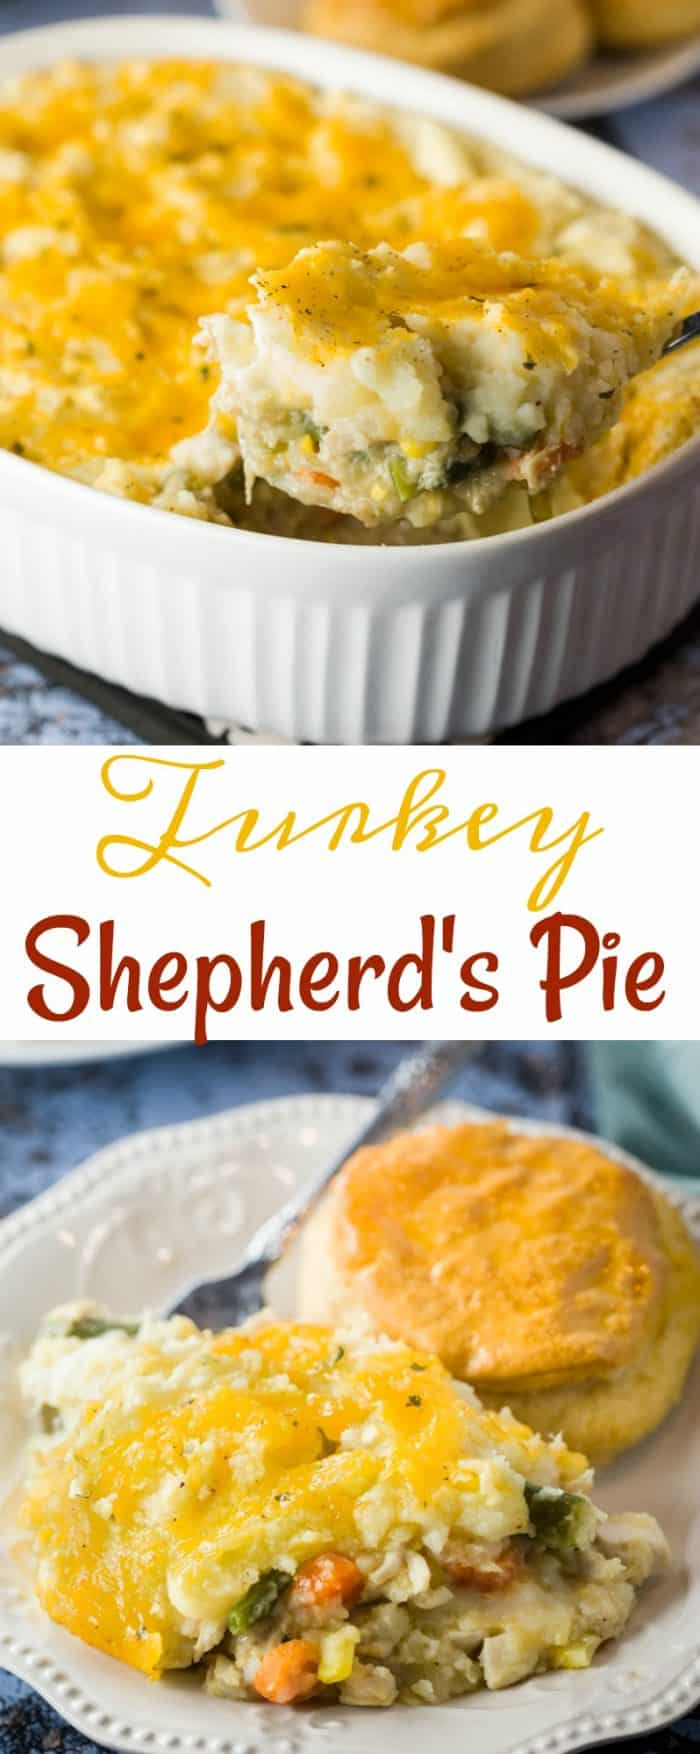 Juicy turkey tossed with a medley of vegetables and gravy. All topped with cheesy mashed potatoes and baked to golden perfection. #turkey #casserole #shephardspie #potatoes #thanksgivingleftovers #recipe #easyrecipes #dinner #comfortfood